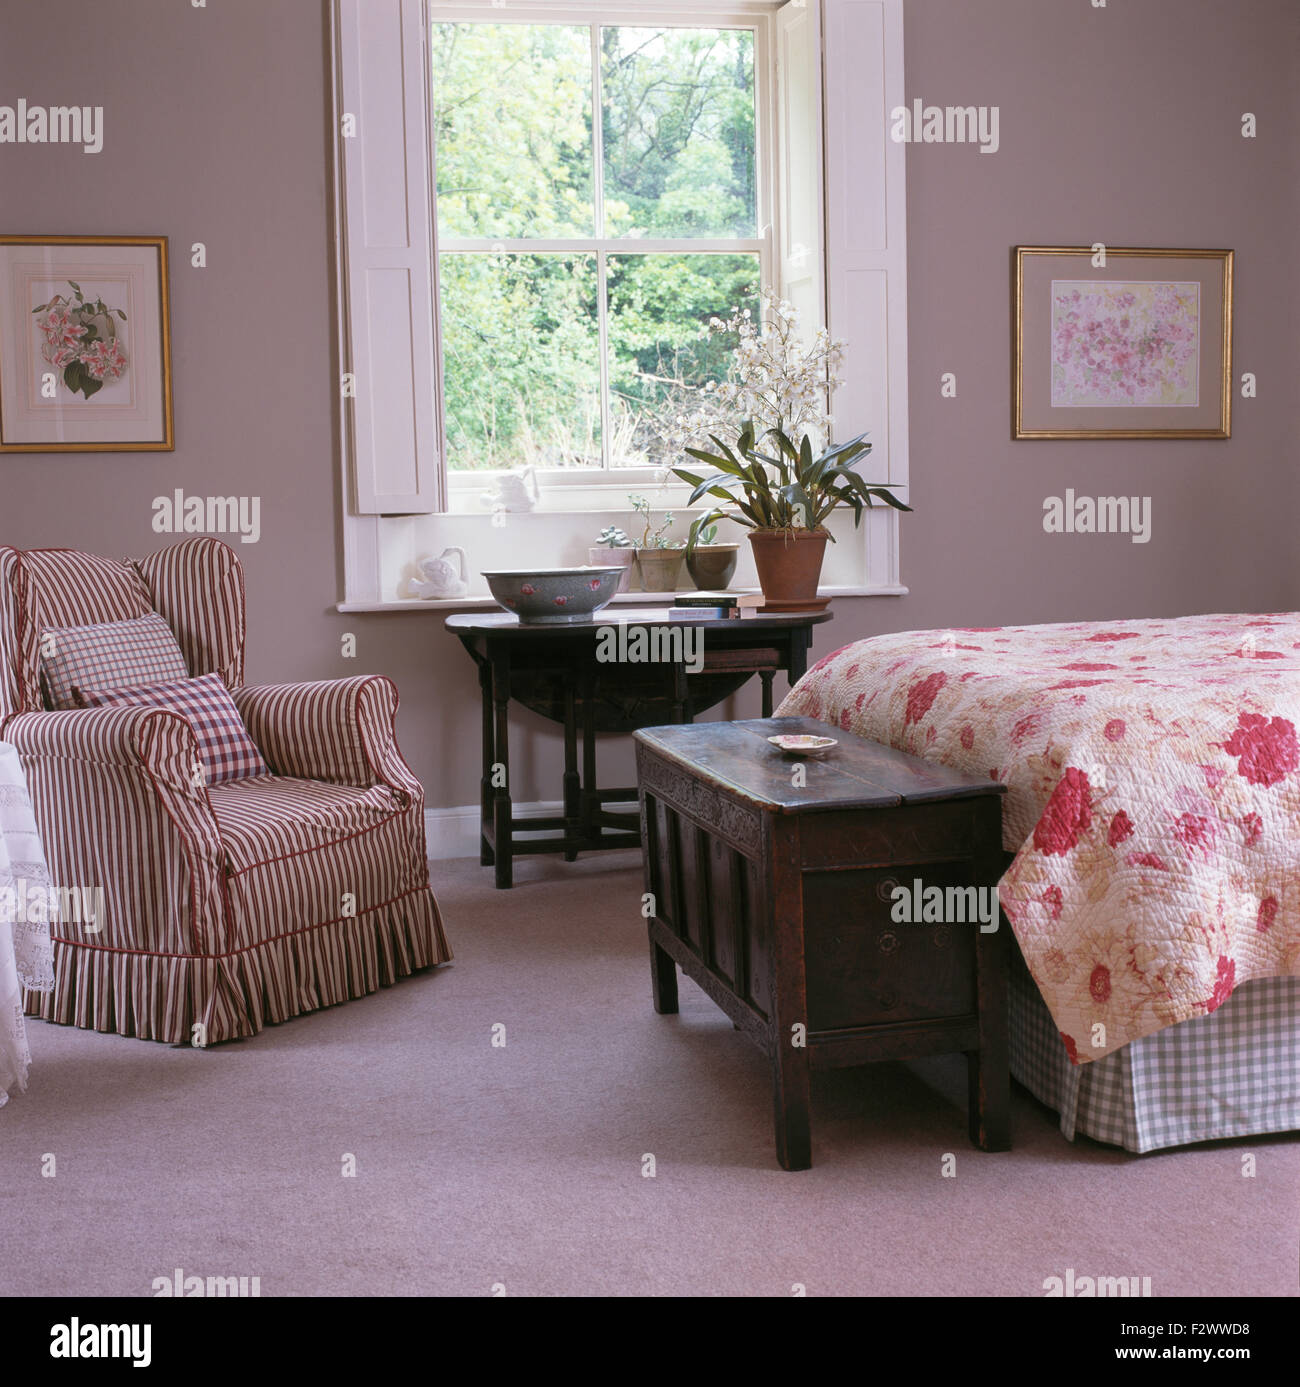 Pale Bedroom Striped Wing Chair And Antique Tables In Pale Grey Country Bedroom